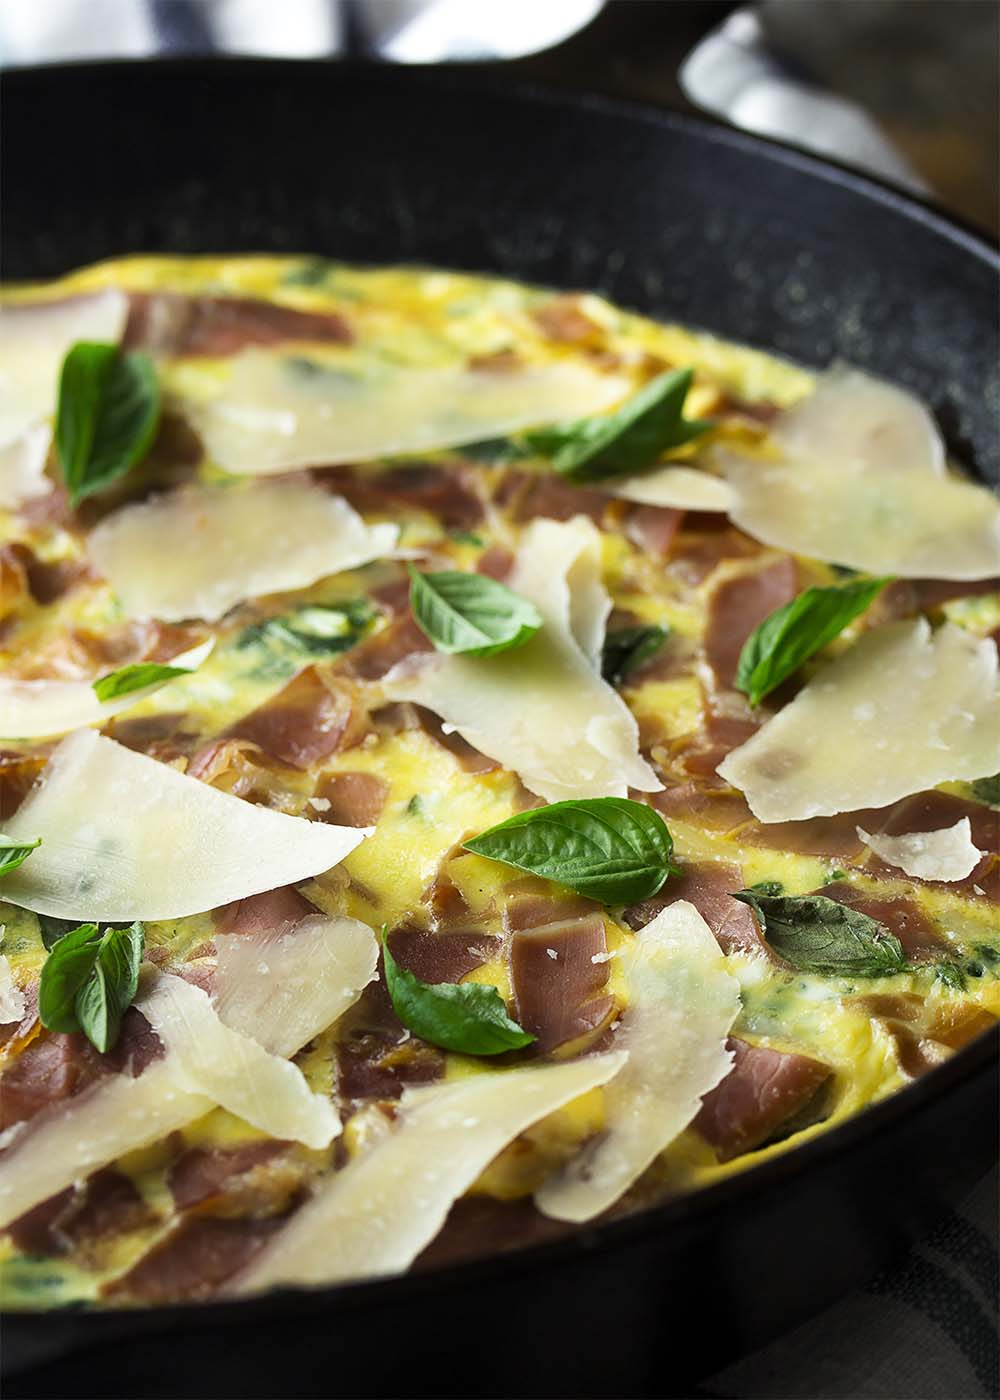 Creamy, fluffy mustard green and leek frittata topped with browned prosciutto, basil leaves and parmesan shavings all in a cast iron pan.